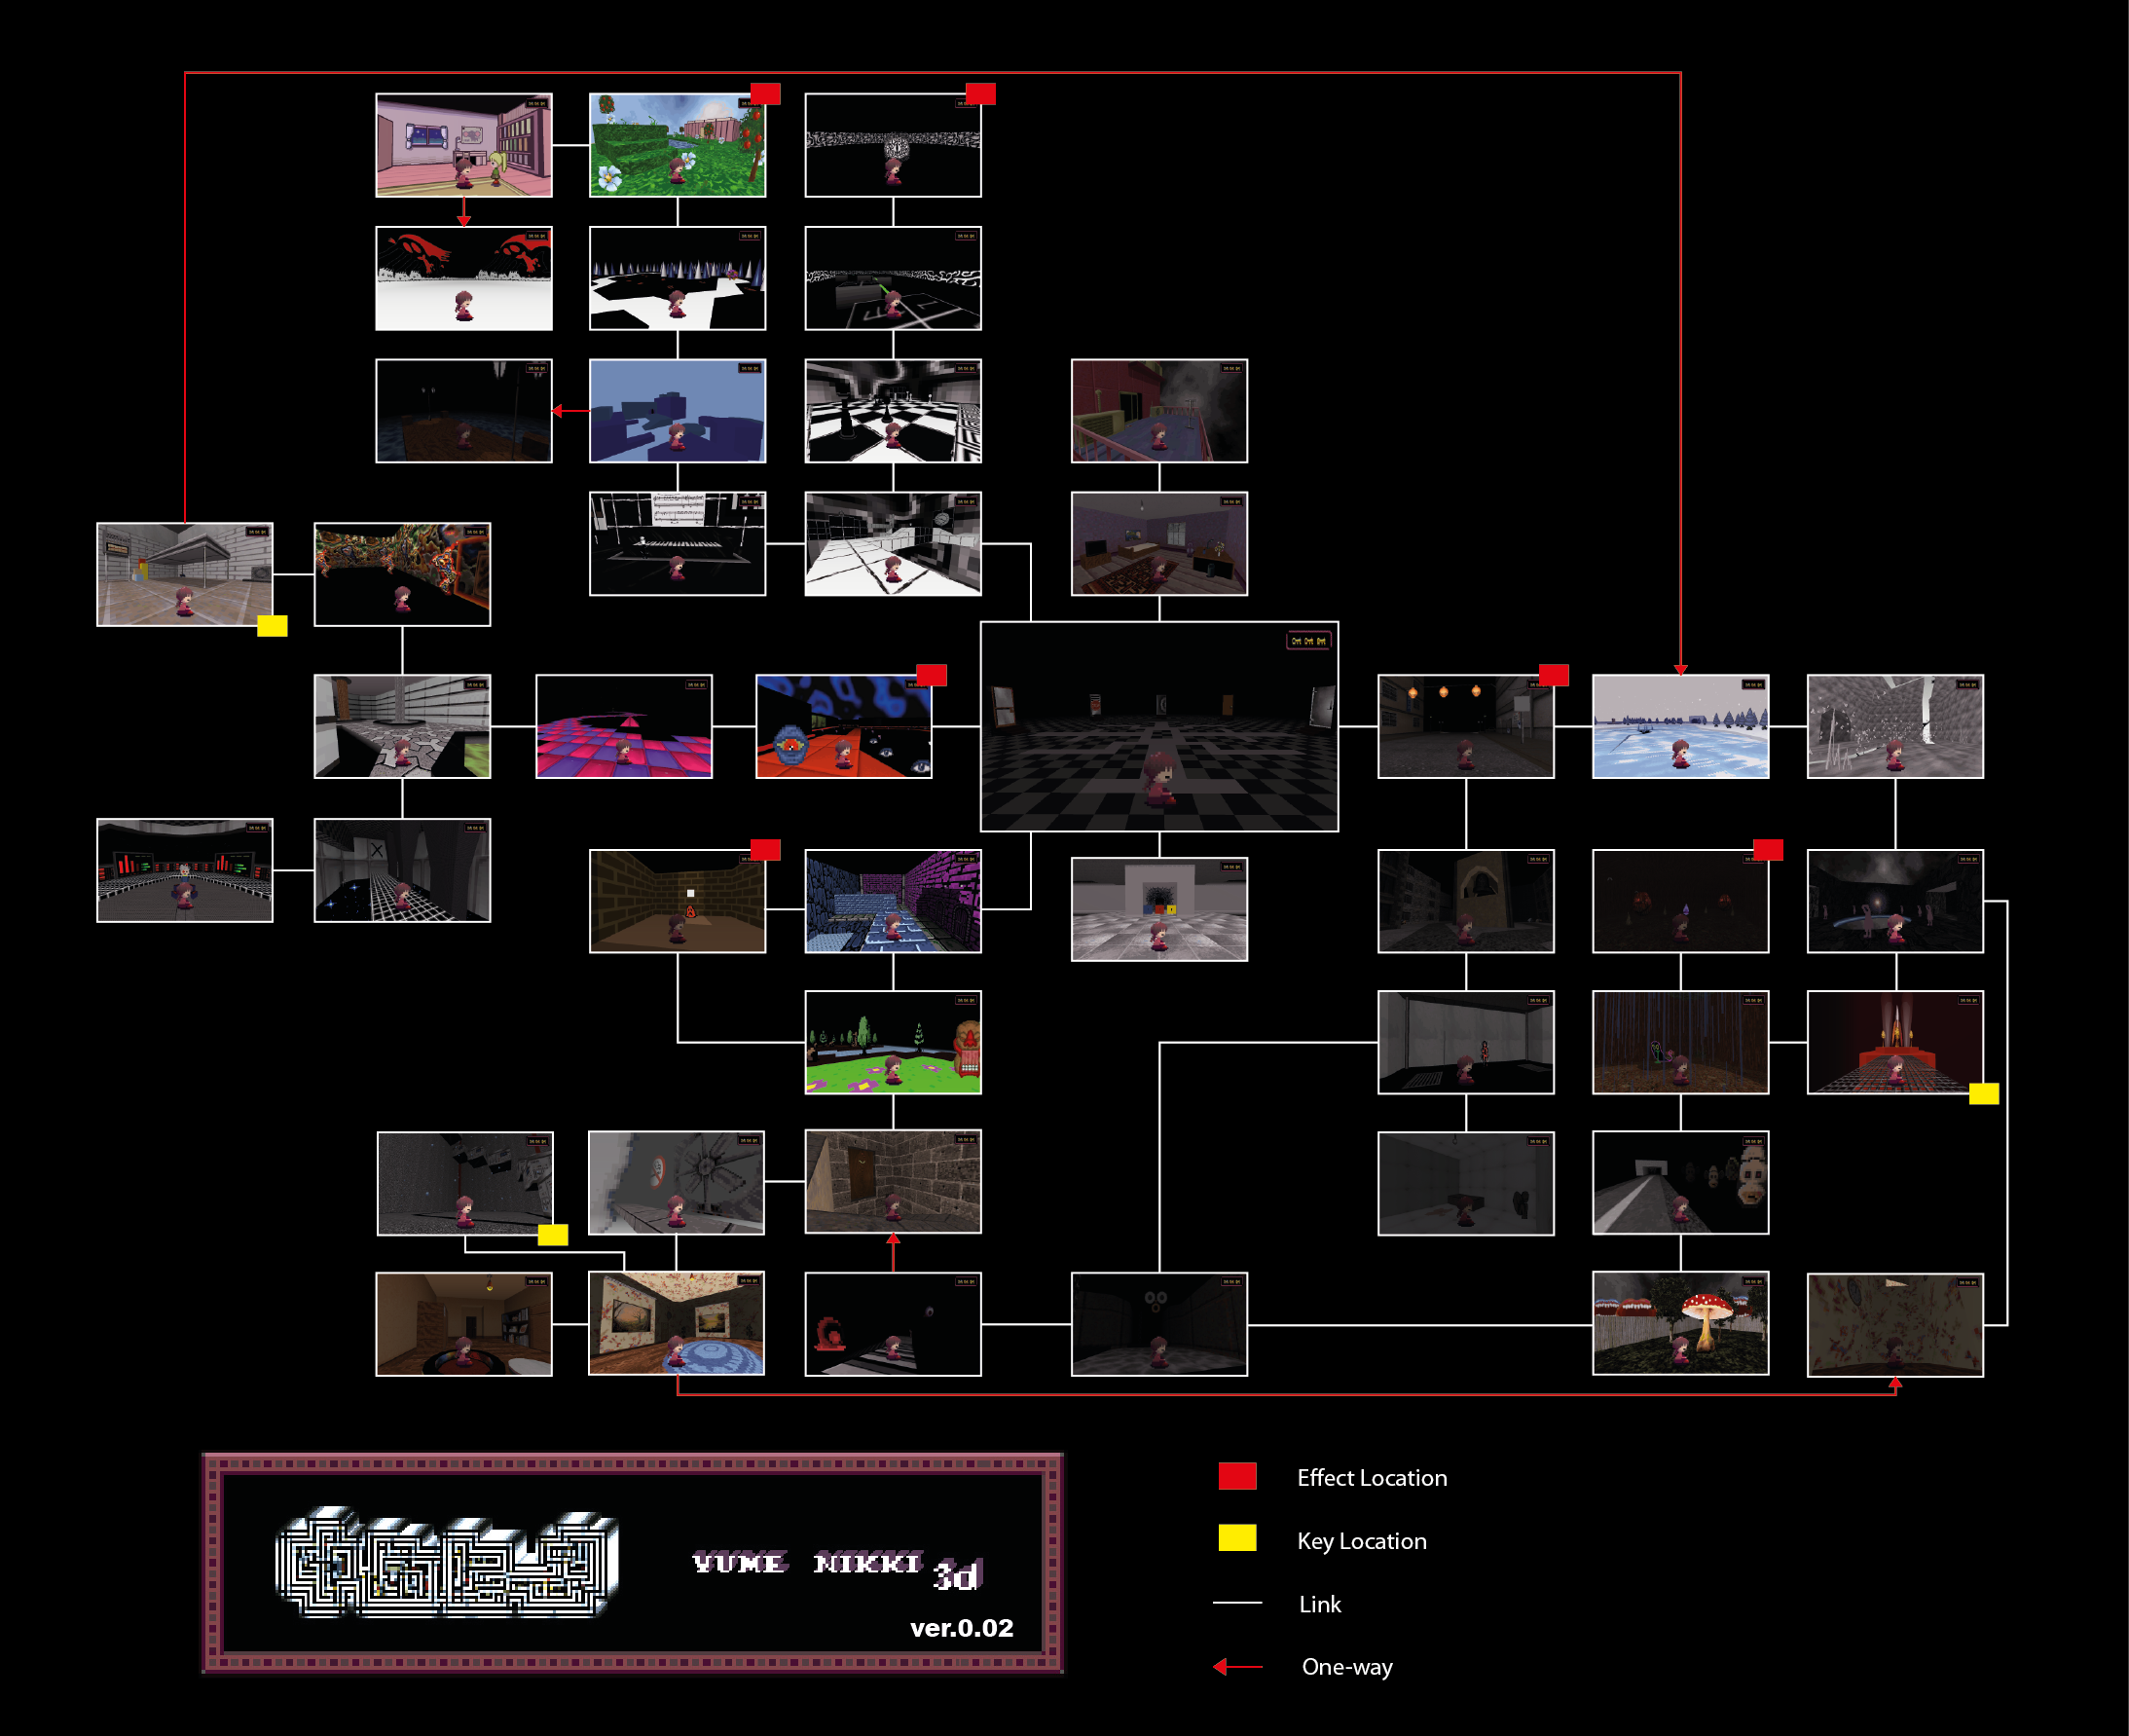 Yume nikki 3d guide yume nikki fangames wiki for 3d walkthrough